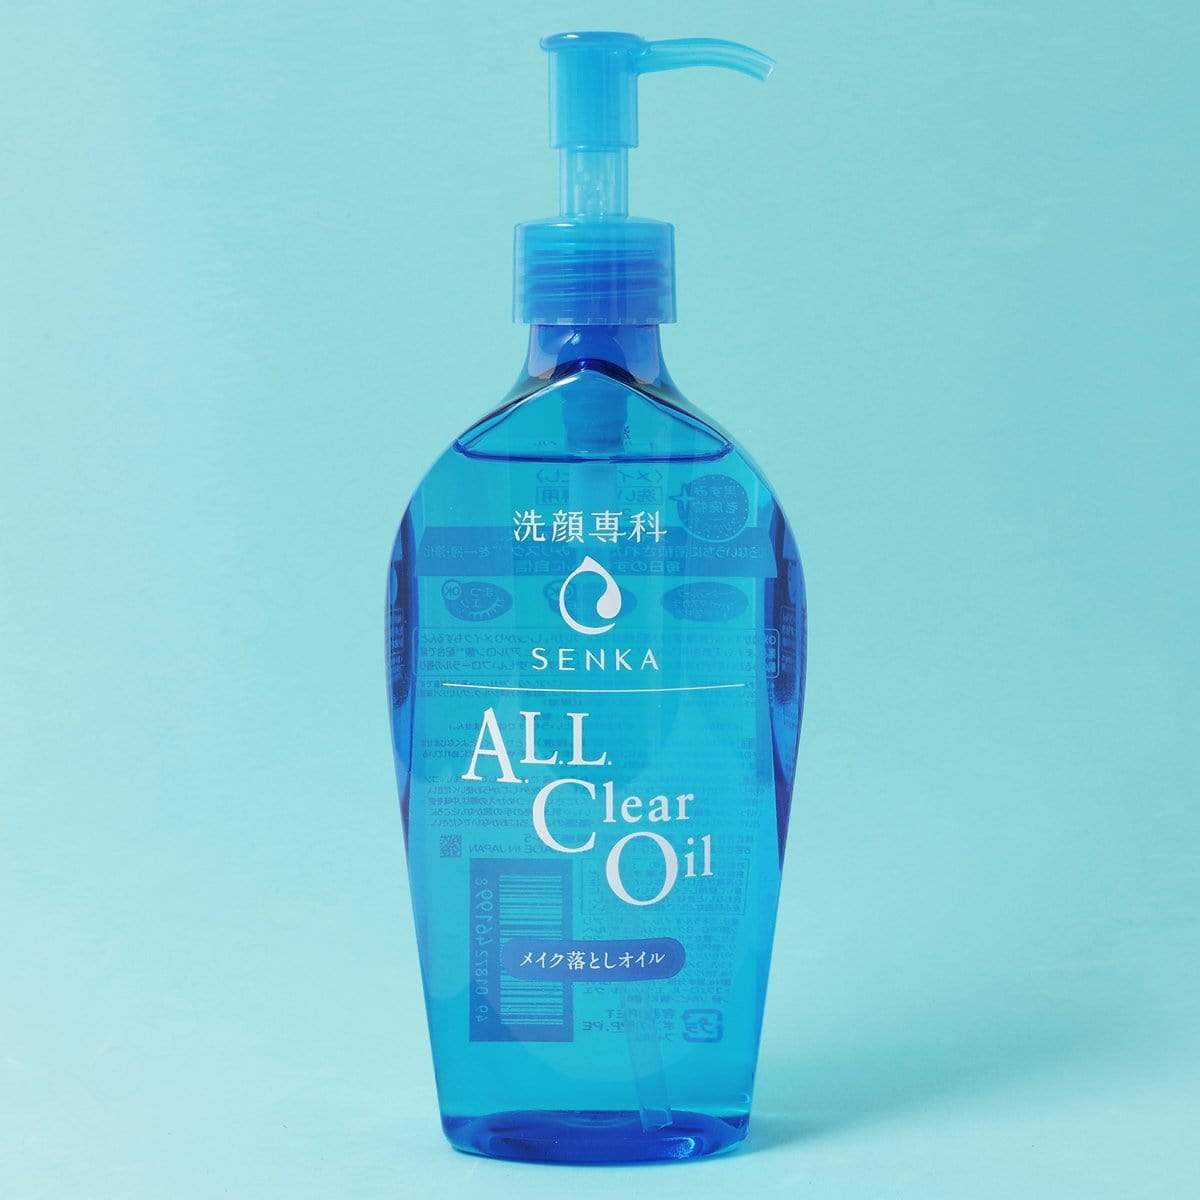 Senka All Clear Oil Makeup Remover